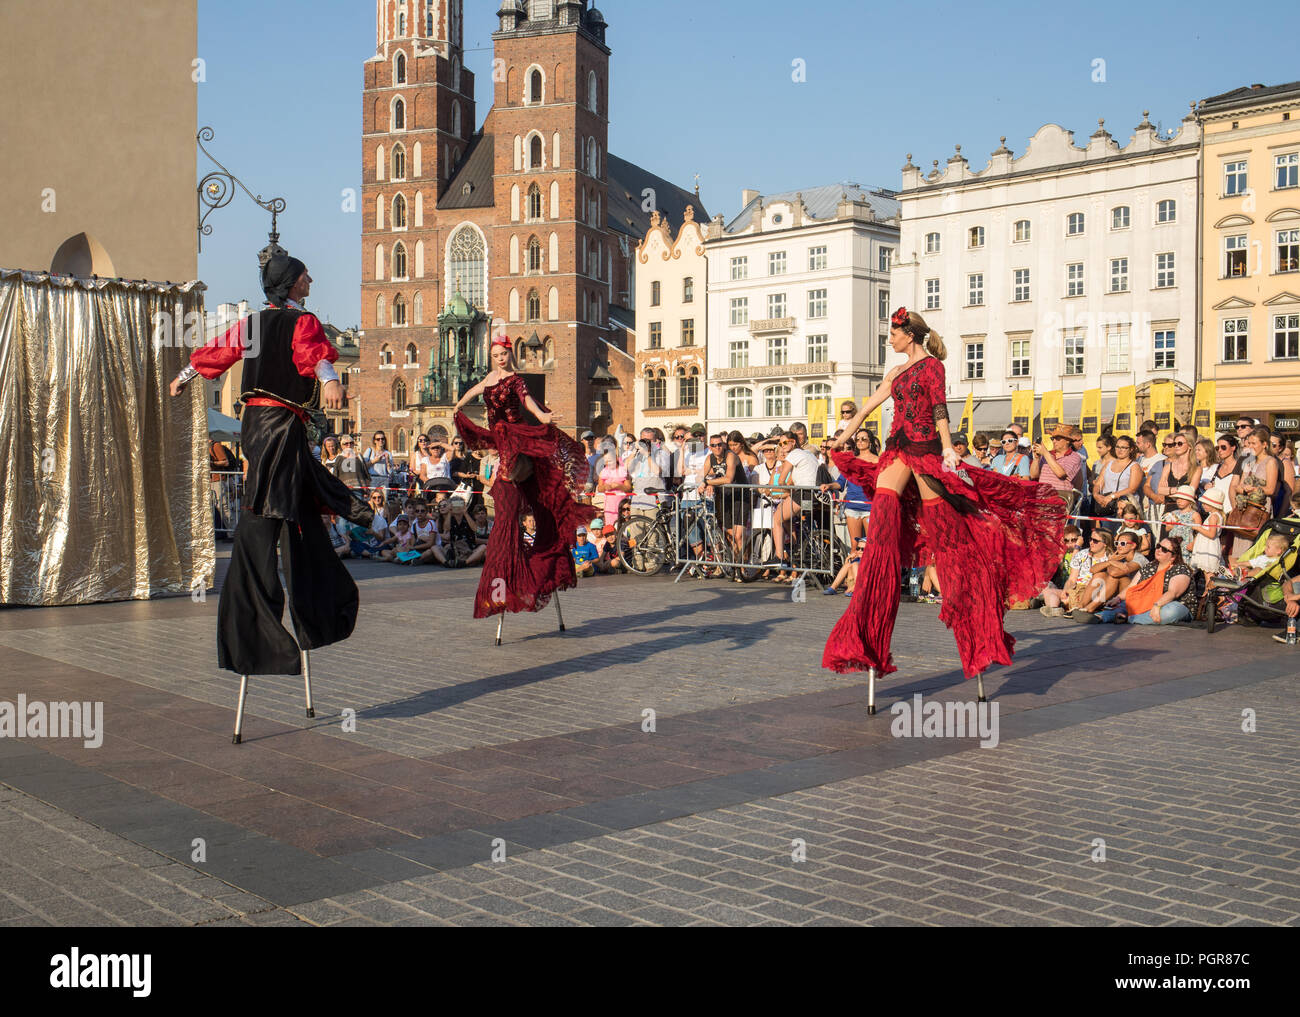 Cracow, Poland - July 5, 2018: Performance of Dance Pageant performed byThe Kiev street Theatre Highlights at 31th Street - International Festival of  - Stock Image